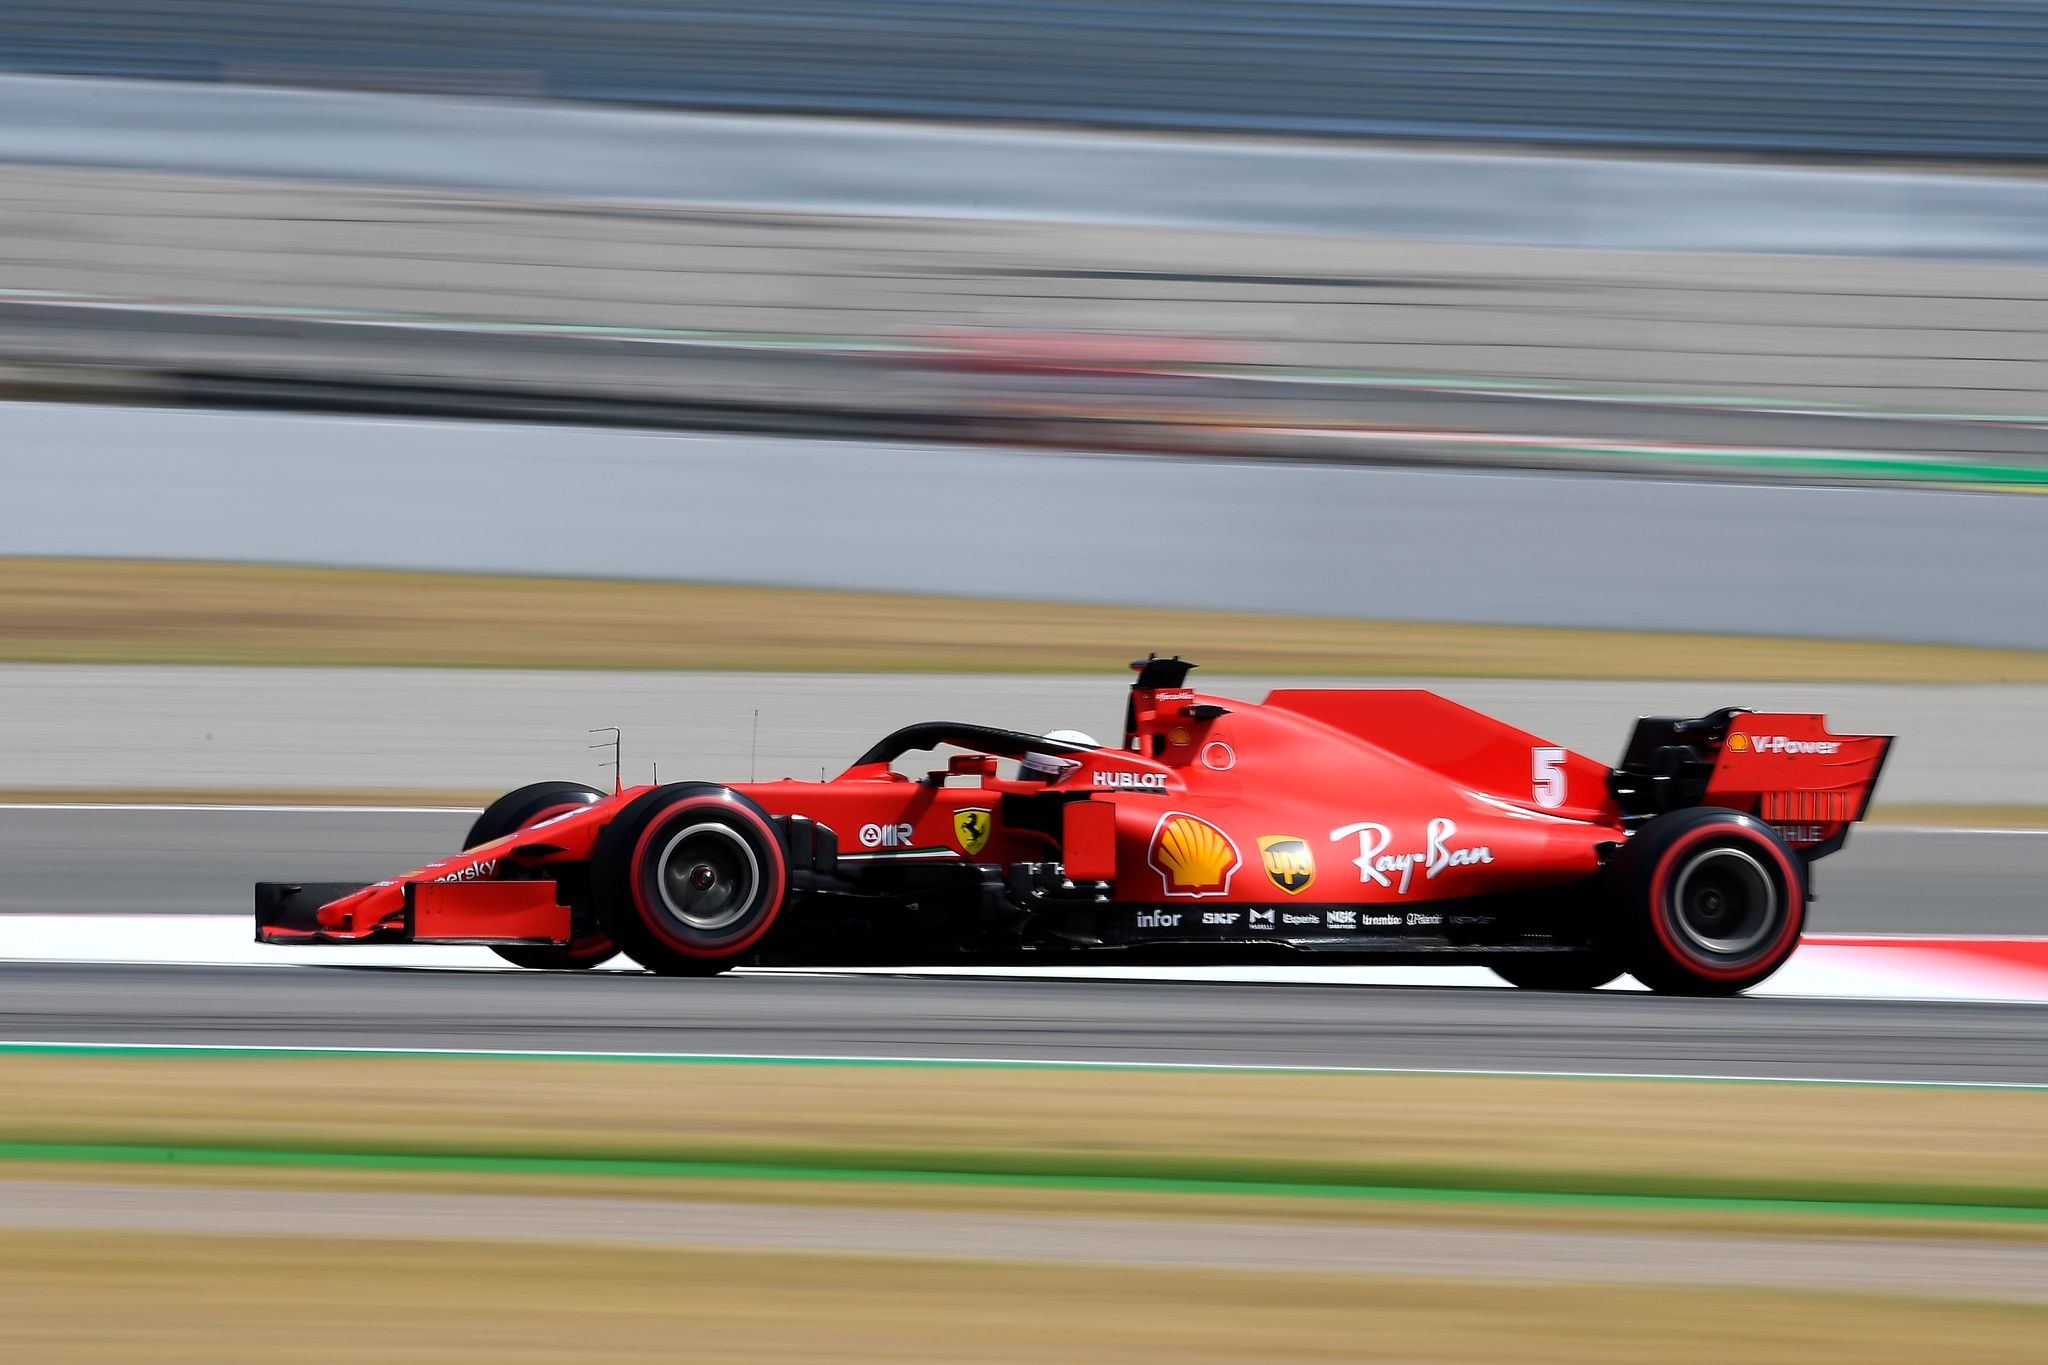 Ferraris German driver Sebastian lt;HIT gt;Vettel lt;/HIT gt; steers his car during the first practice session at the Circuit de Catalunya in Montmelo near Barcelona on August 14, 2020 ahead of the Spanish F1 Grand Prix. (Photo by Josep LAGO / POOL / AFP)